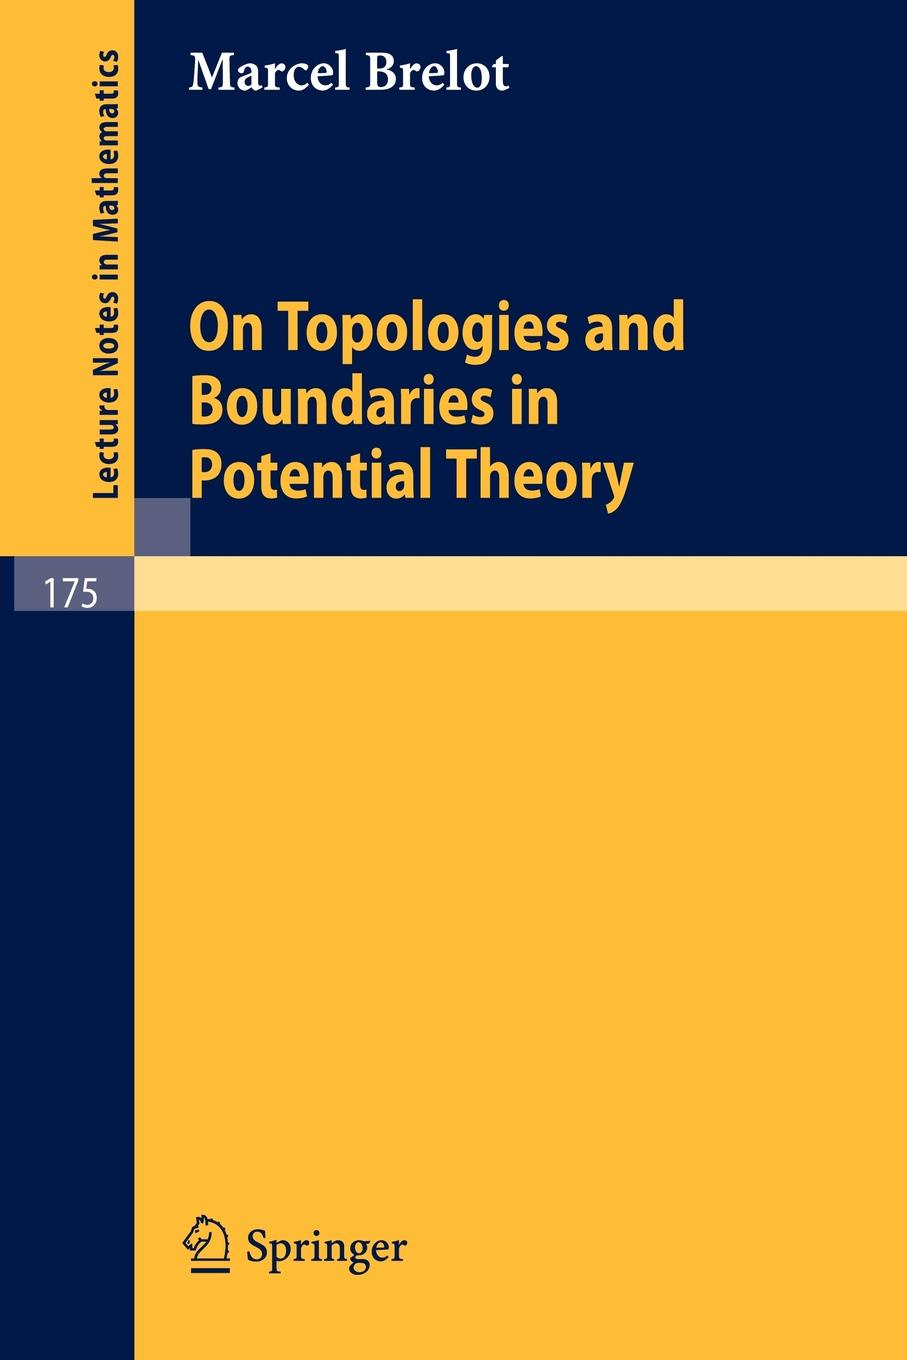 Marcel Brelot On Topologies and Boundaries in Potential Theory маска delta plus ffp3 м1304vwc